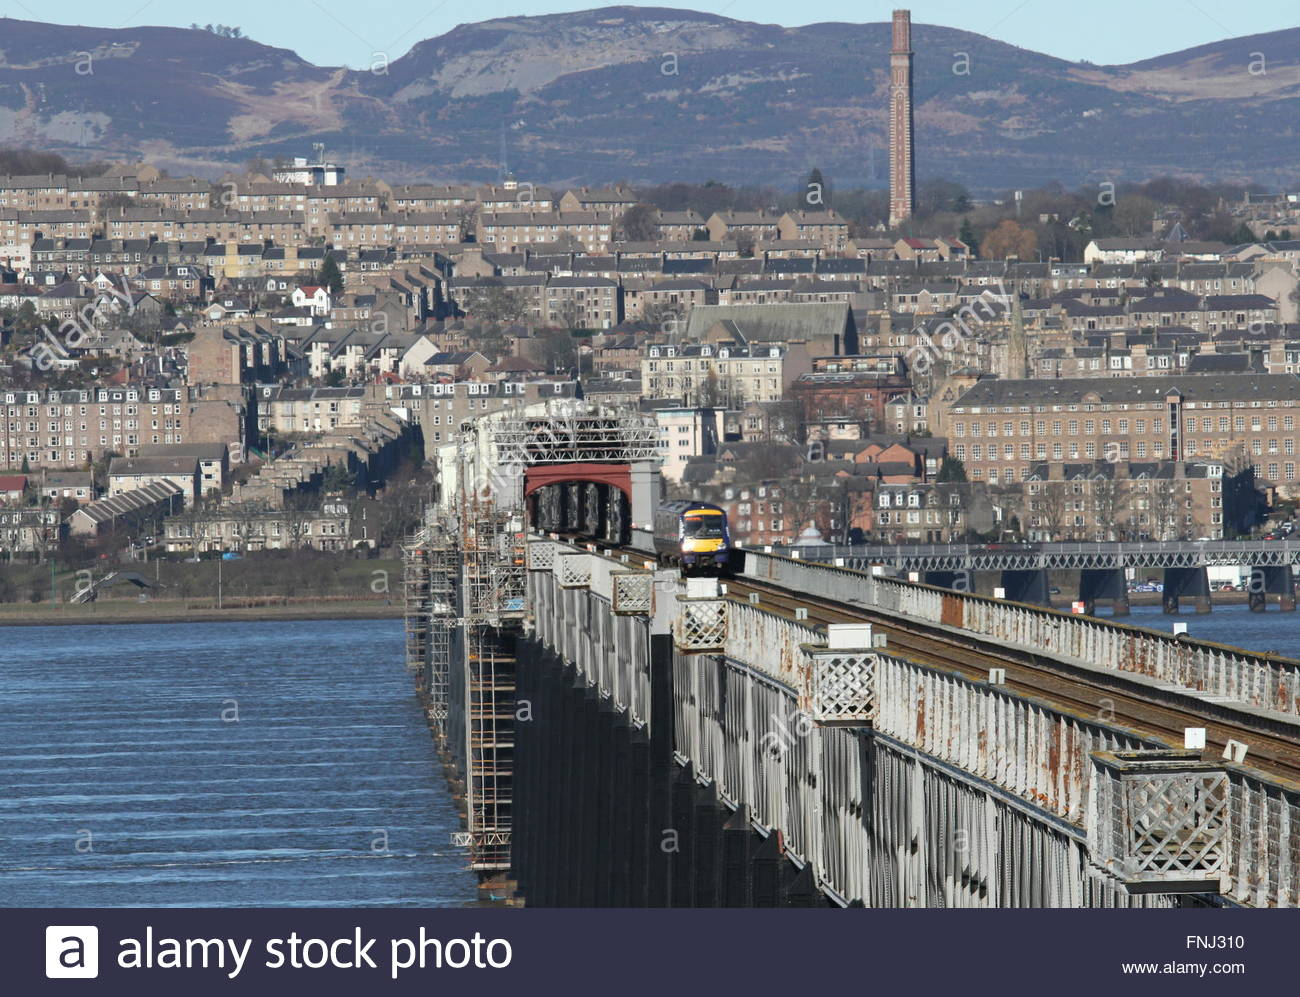 Train crossing Tay Rail Bridge with Cox's Stack Chimney Dundee Scotland  March 2016 - Stock Image